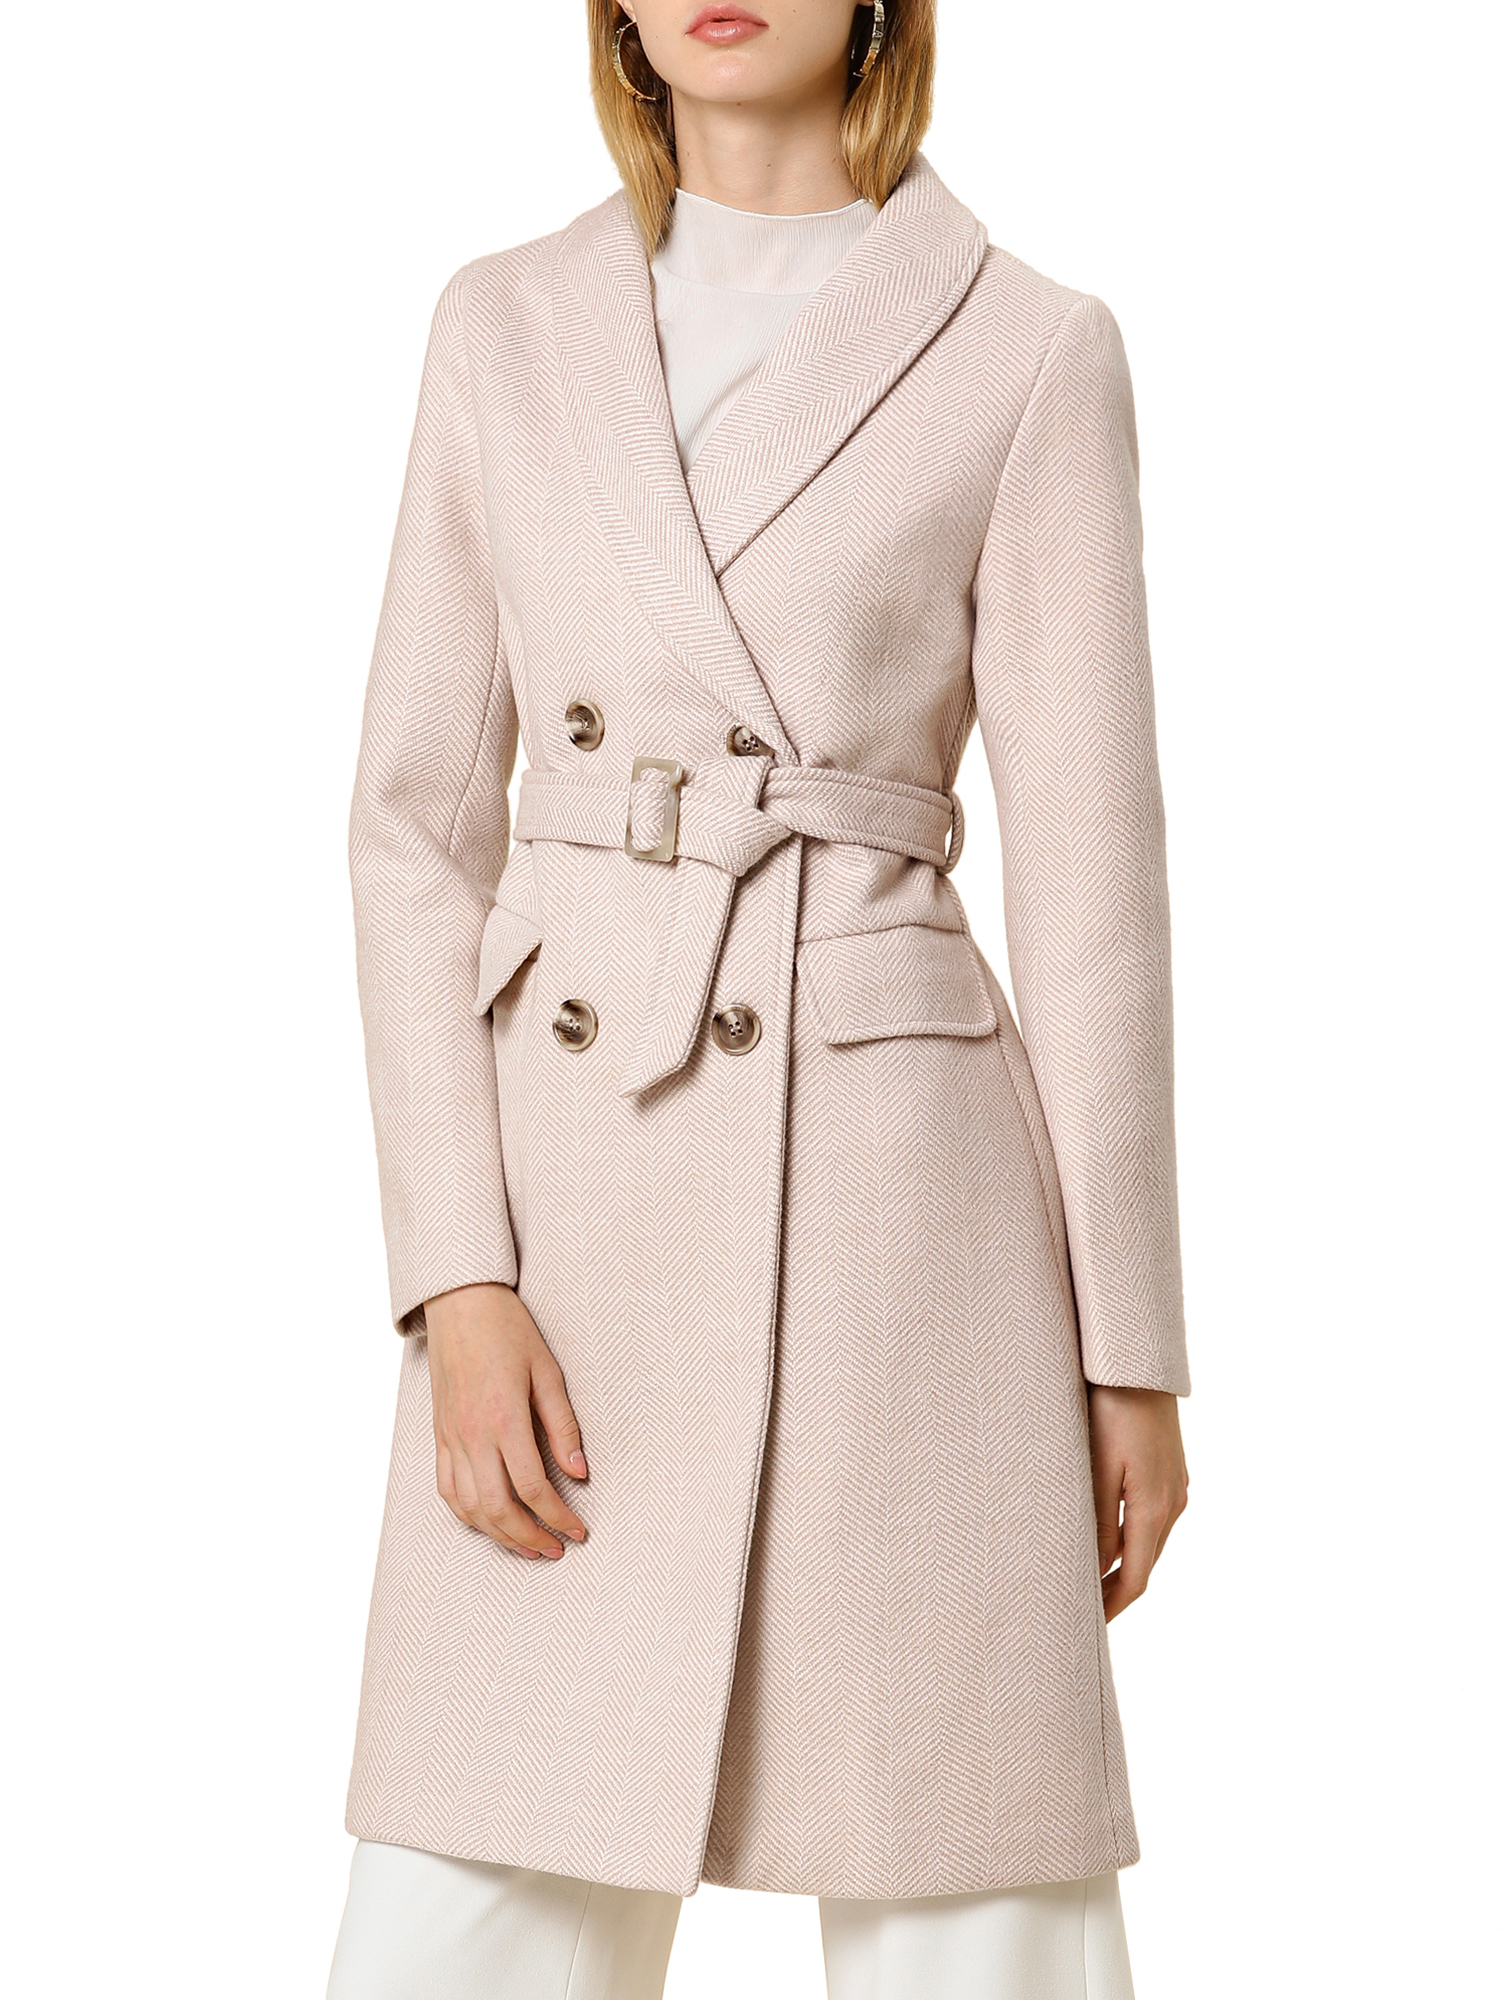 Allegra K Women's Double Breasted Belted Lapel Long Wool Coat Apricot XS (US 2)